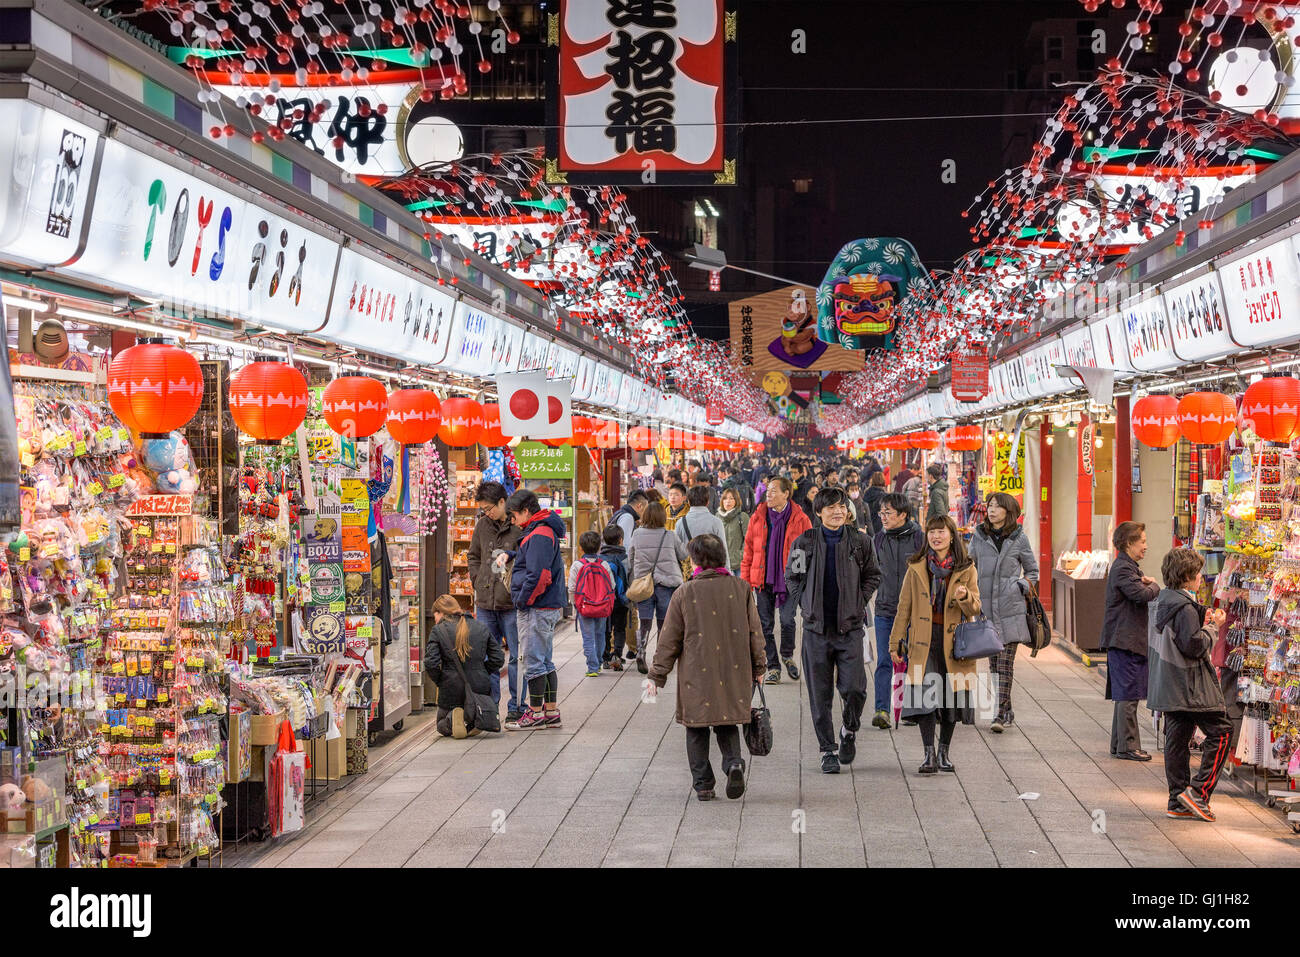 Shopping arcade at Sensoji Temple in Asakusa, Tokyo, Japan. - Stock Image